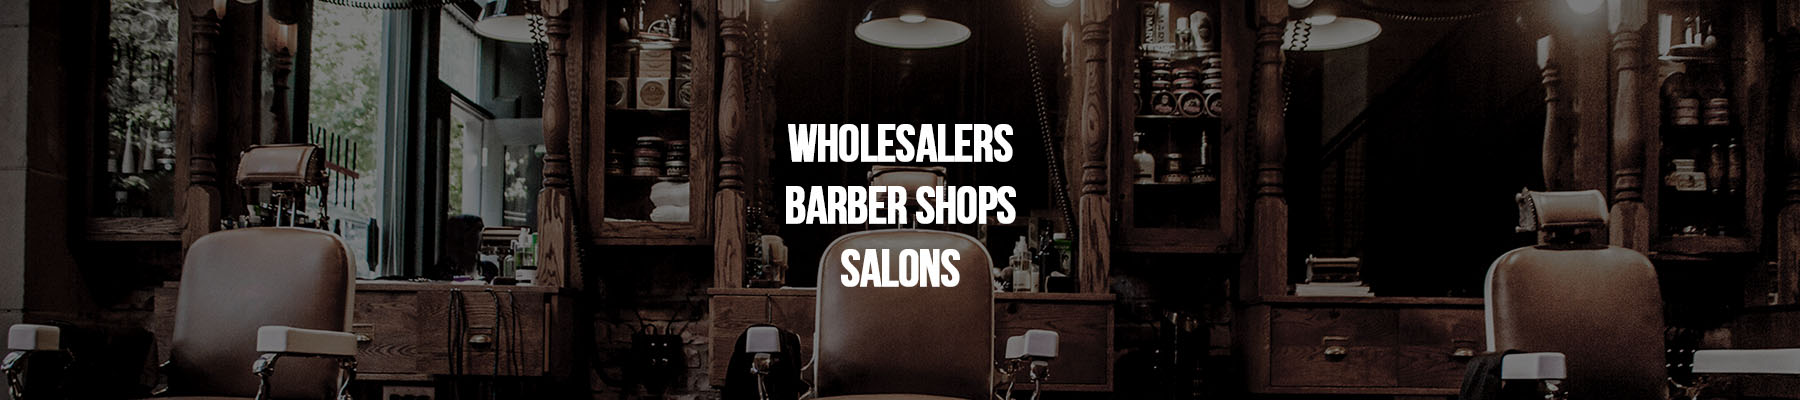 Wholesaler, Barbershop, Salons